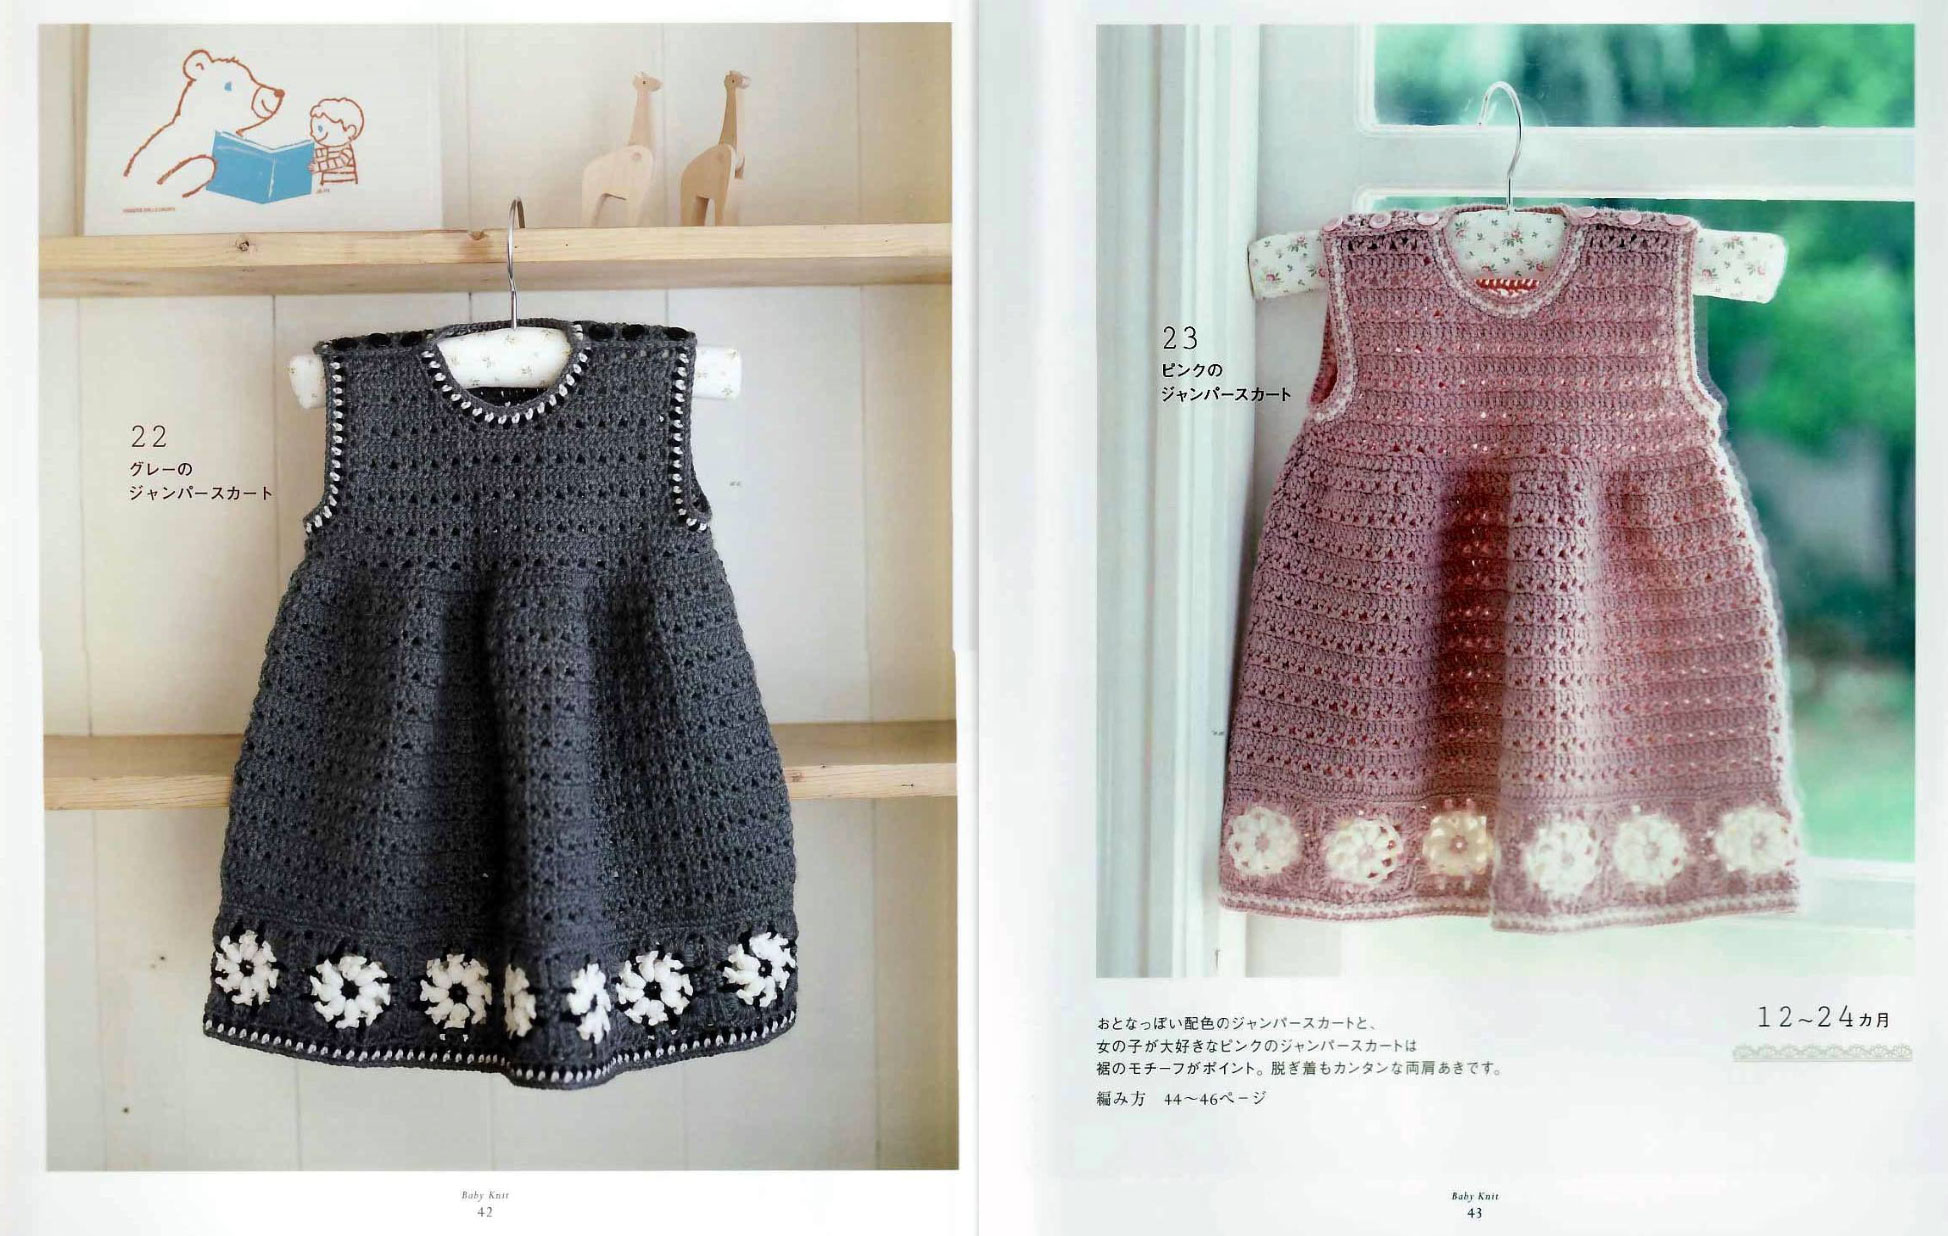 Cute Japanese Baby Crochet Dress Pattern ⋆ Crochet Kingdom